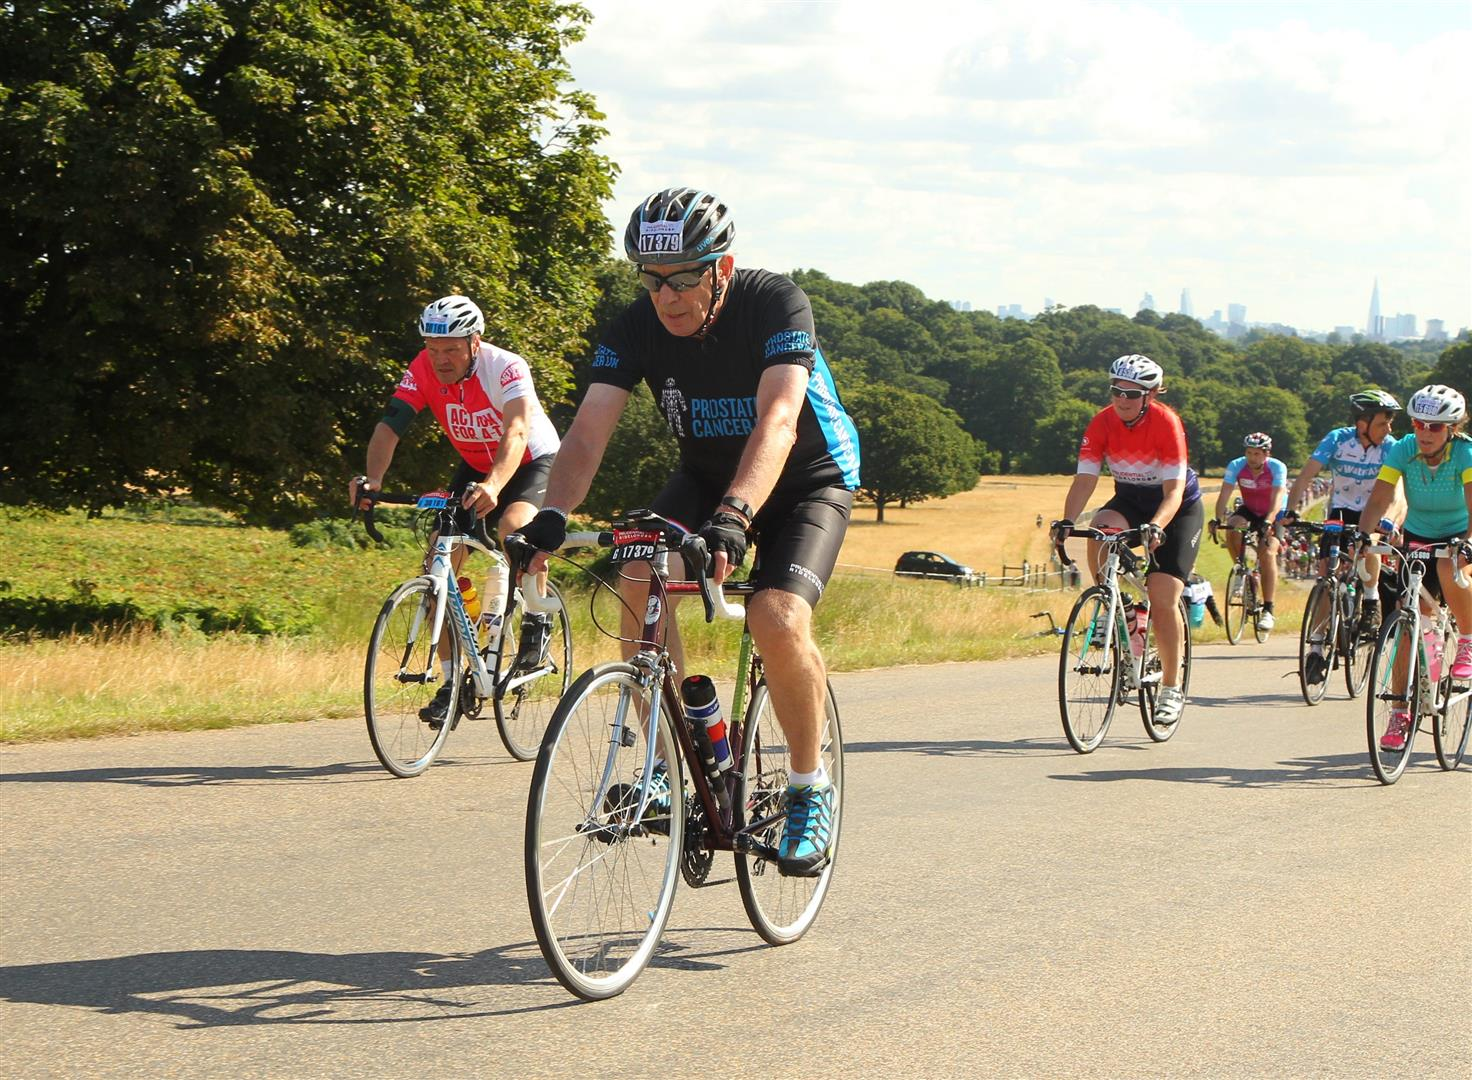 Cycling challenge for Prostate cancer awareness